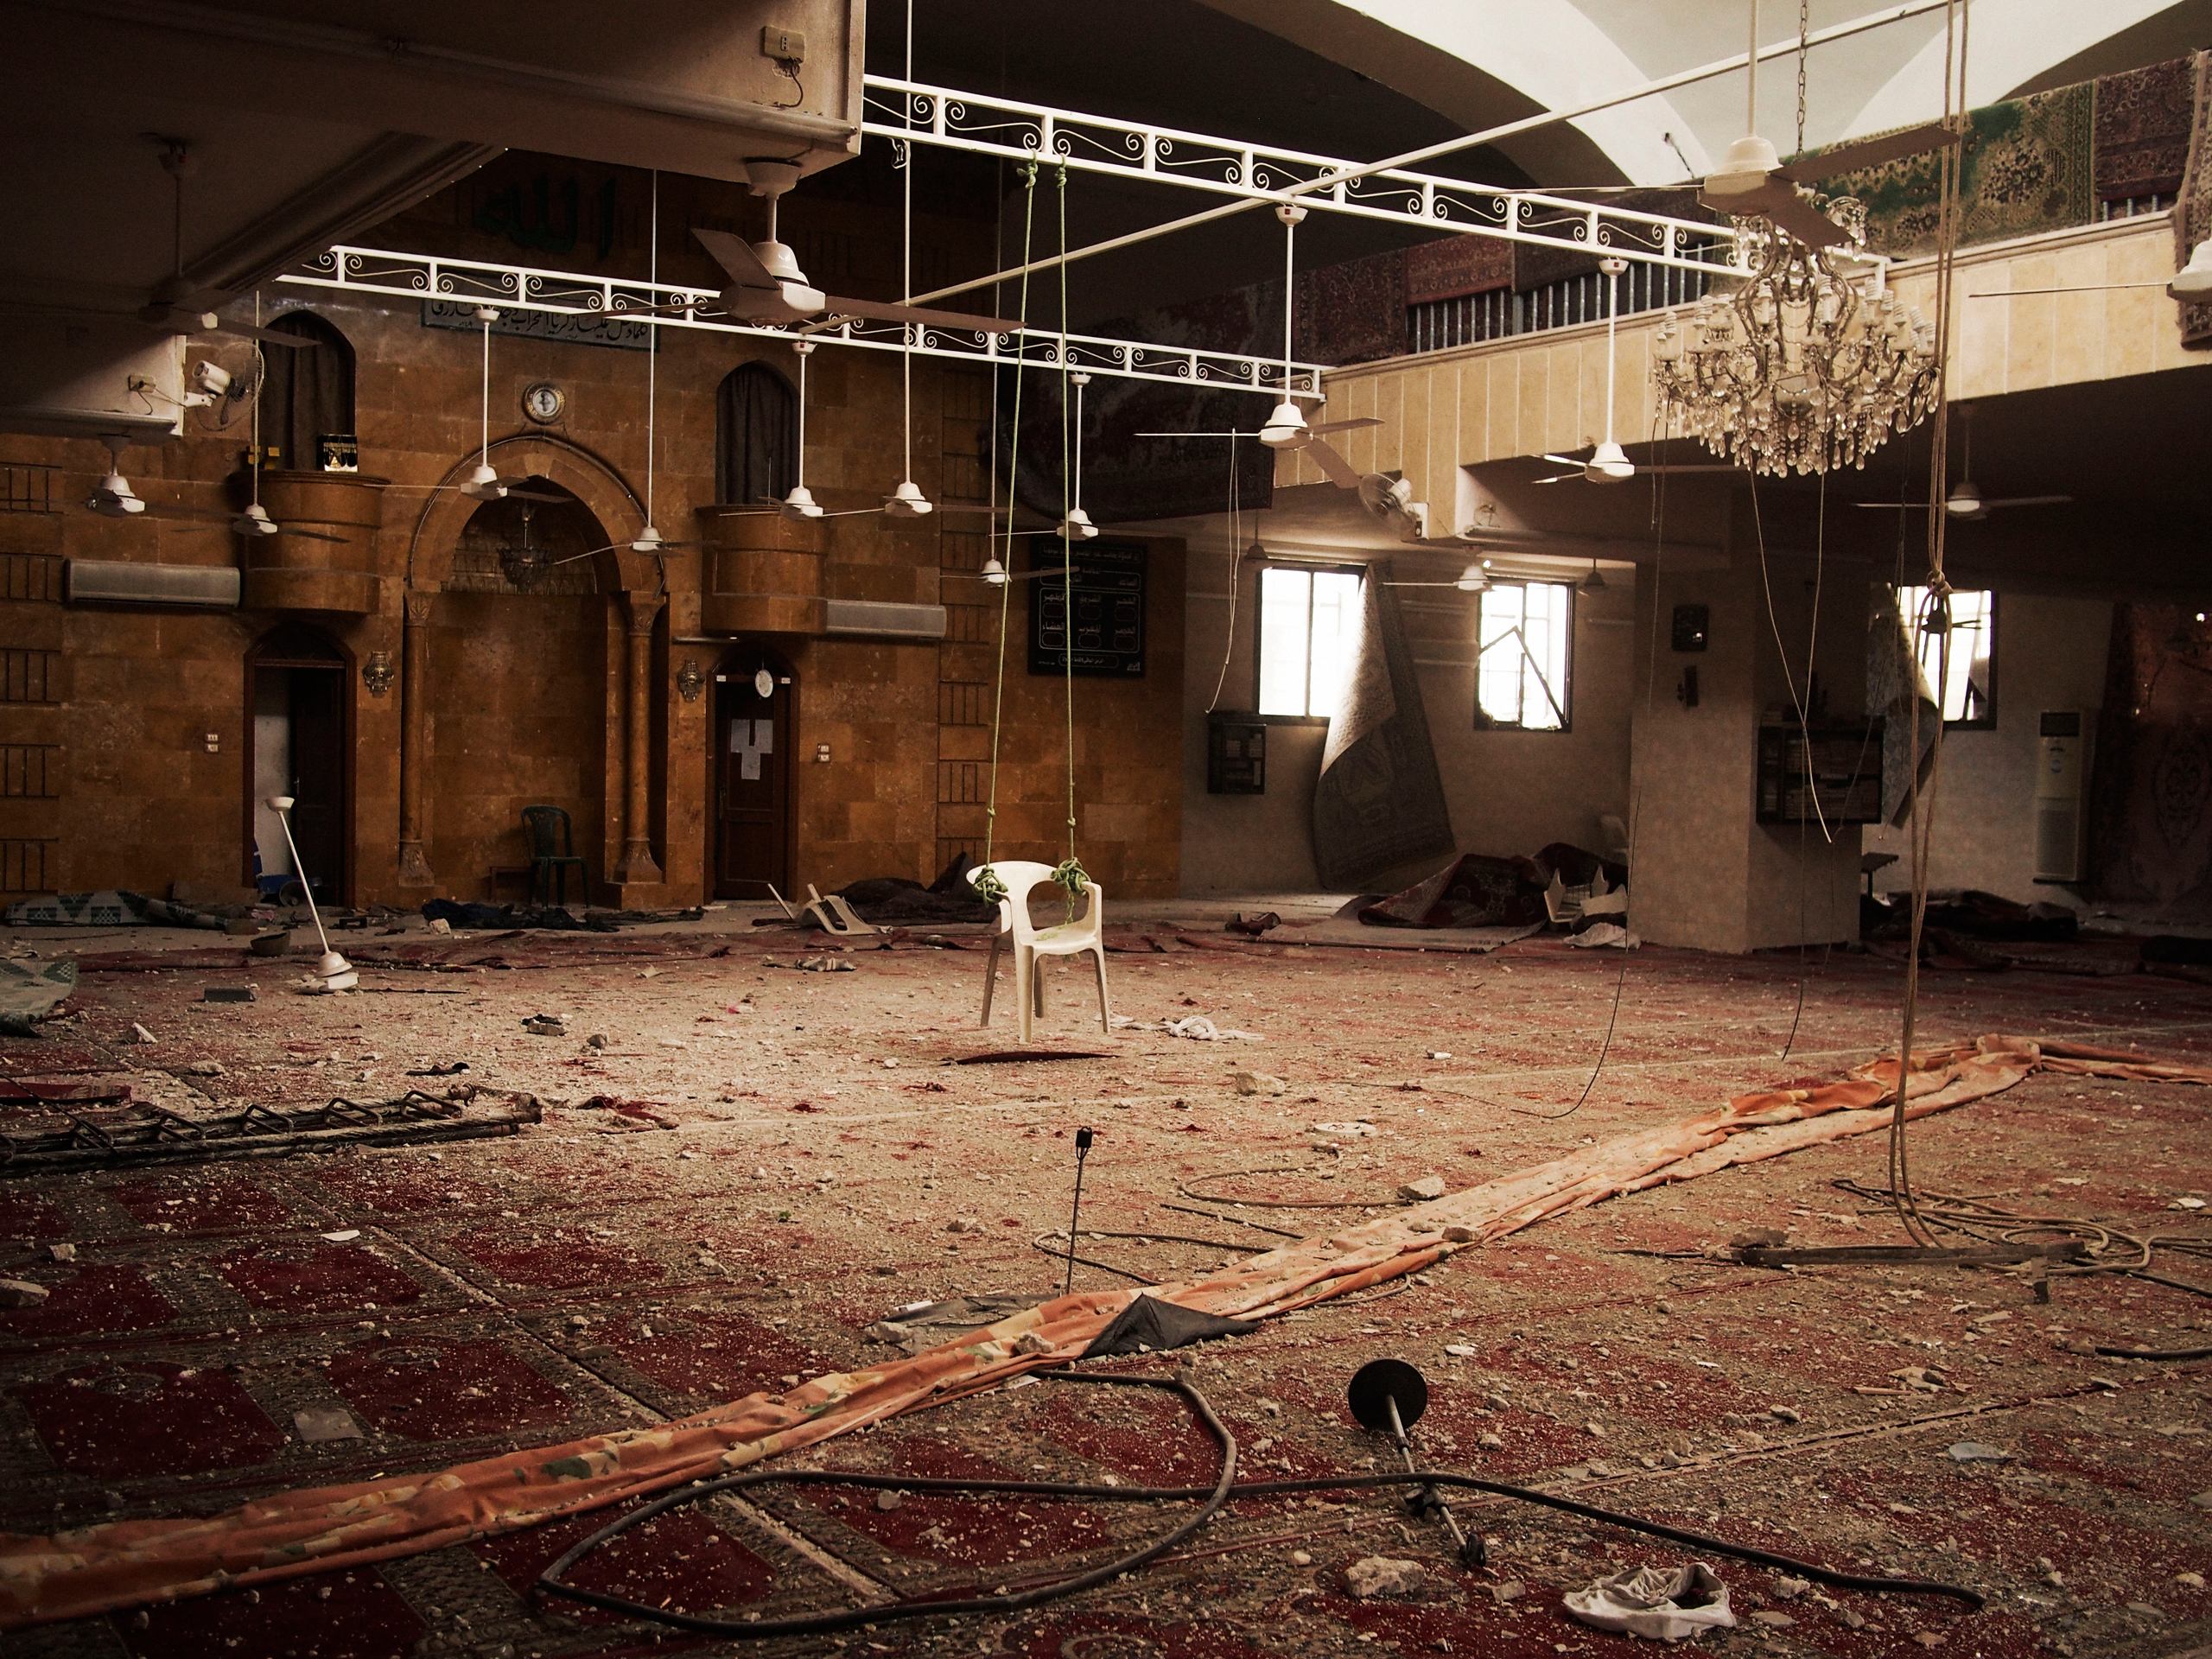 A makeshift swing made with a plastic chair remains inside a mosque that was occupied by Syria Army soldiers in the front line of the Salahedin district of Aleppo, Syria on March 25, 2013.